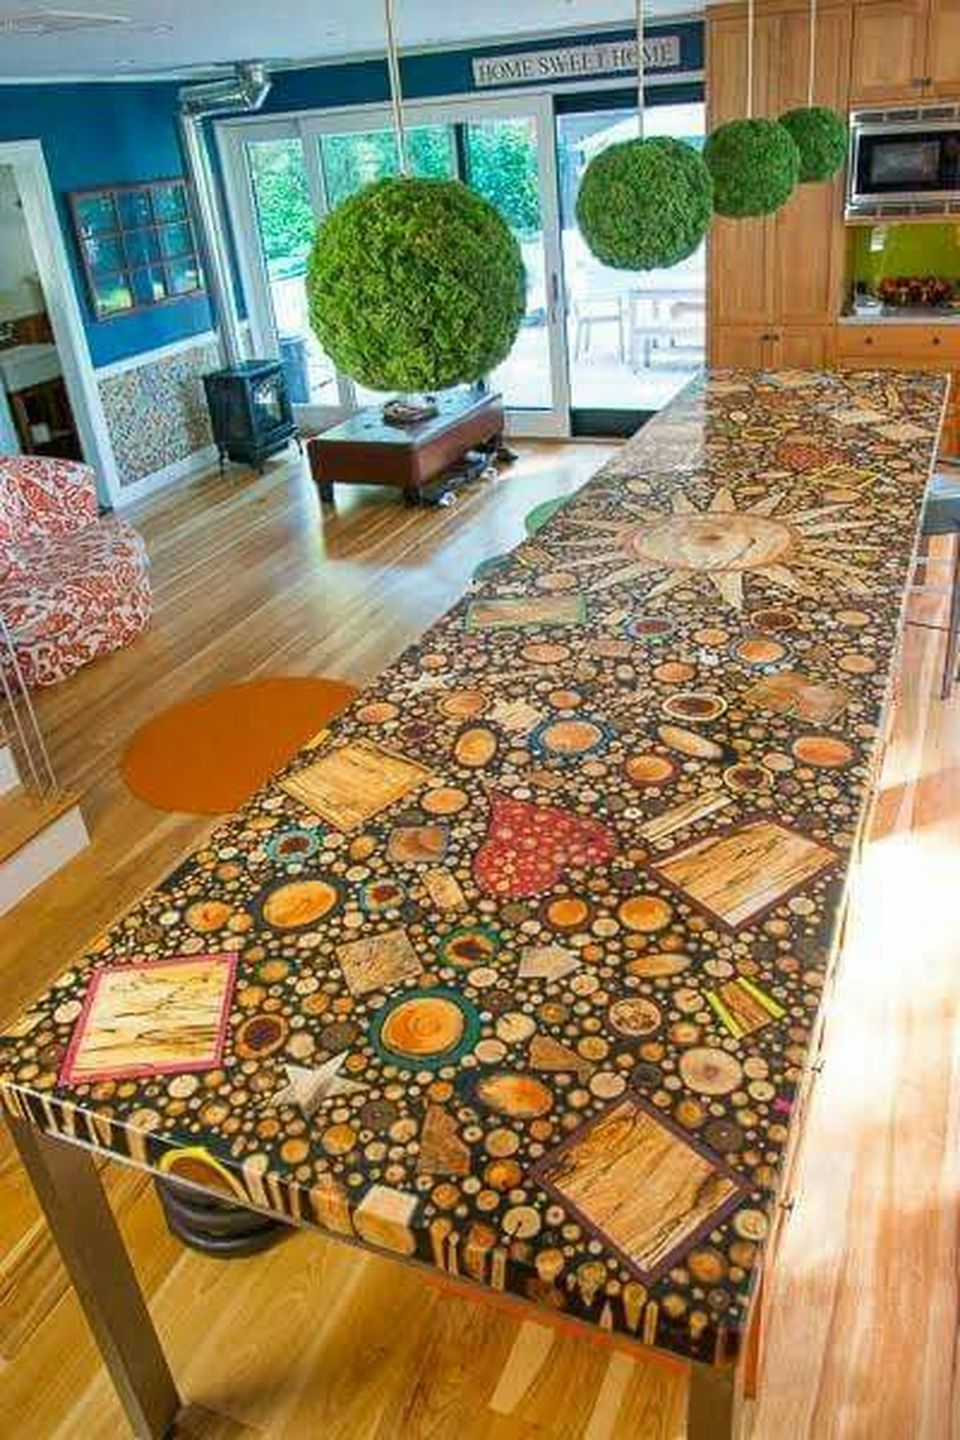 Awesome Resin Wood Table Project 25 Hoommy Com